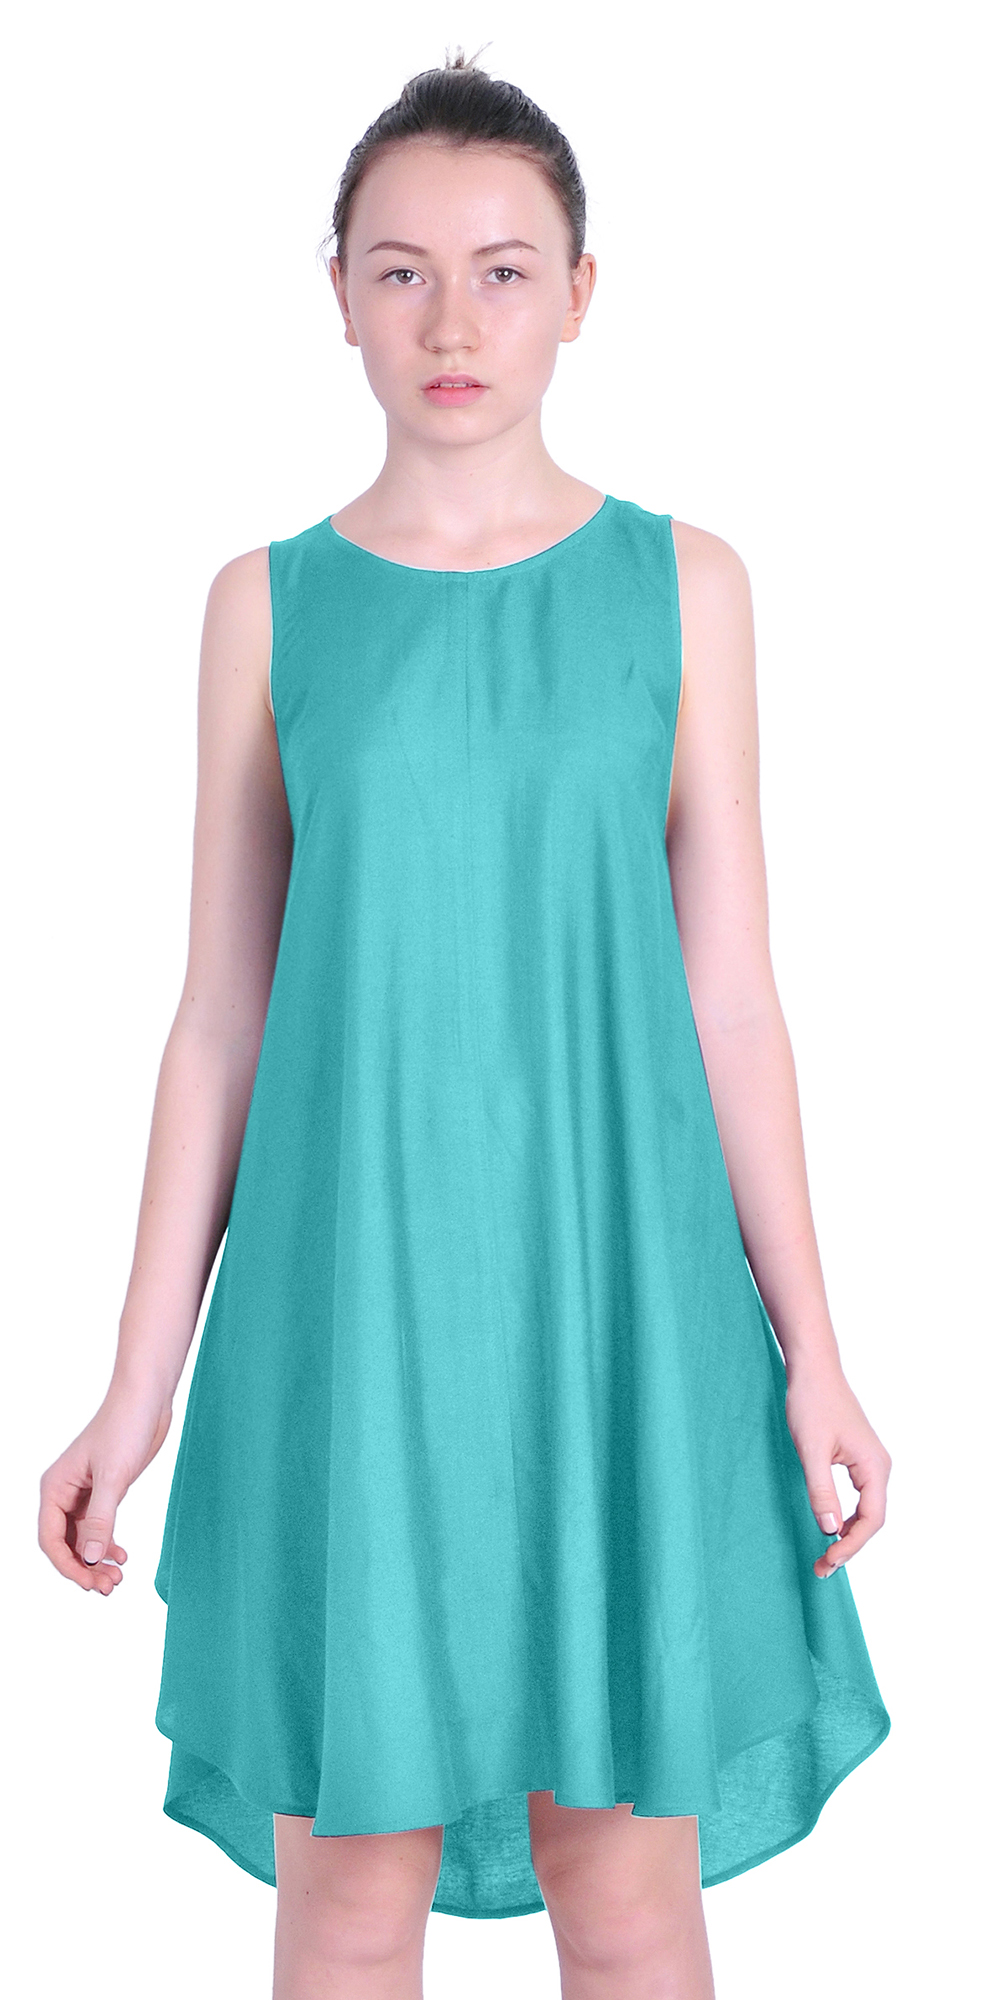 WOMENS CASUAL SUMMER TRAPEZE DRESSES LOOSE FIT SLEEVELESS ...